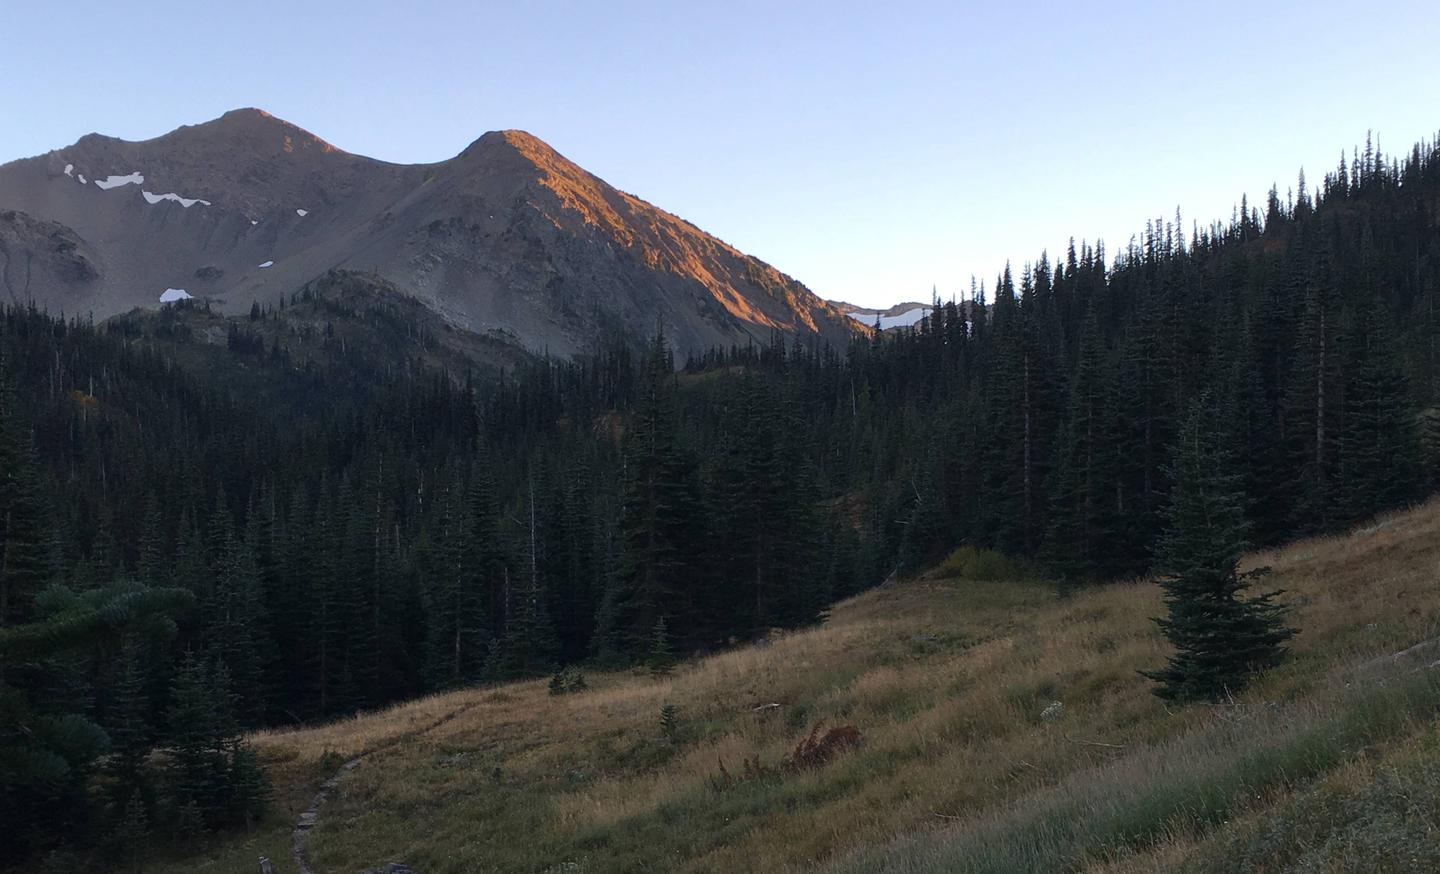 Subalpine meadow surrounded by mountain peaks and forestGrand Valley